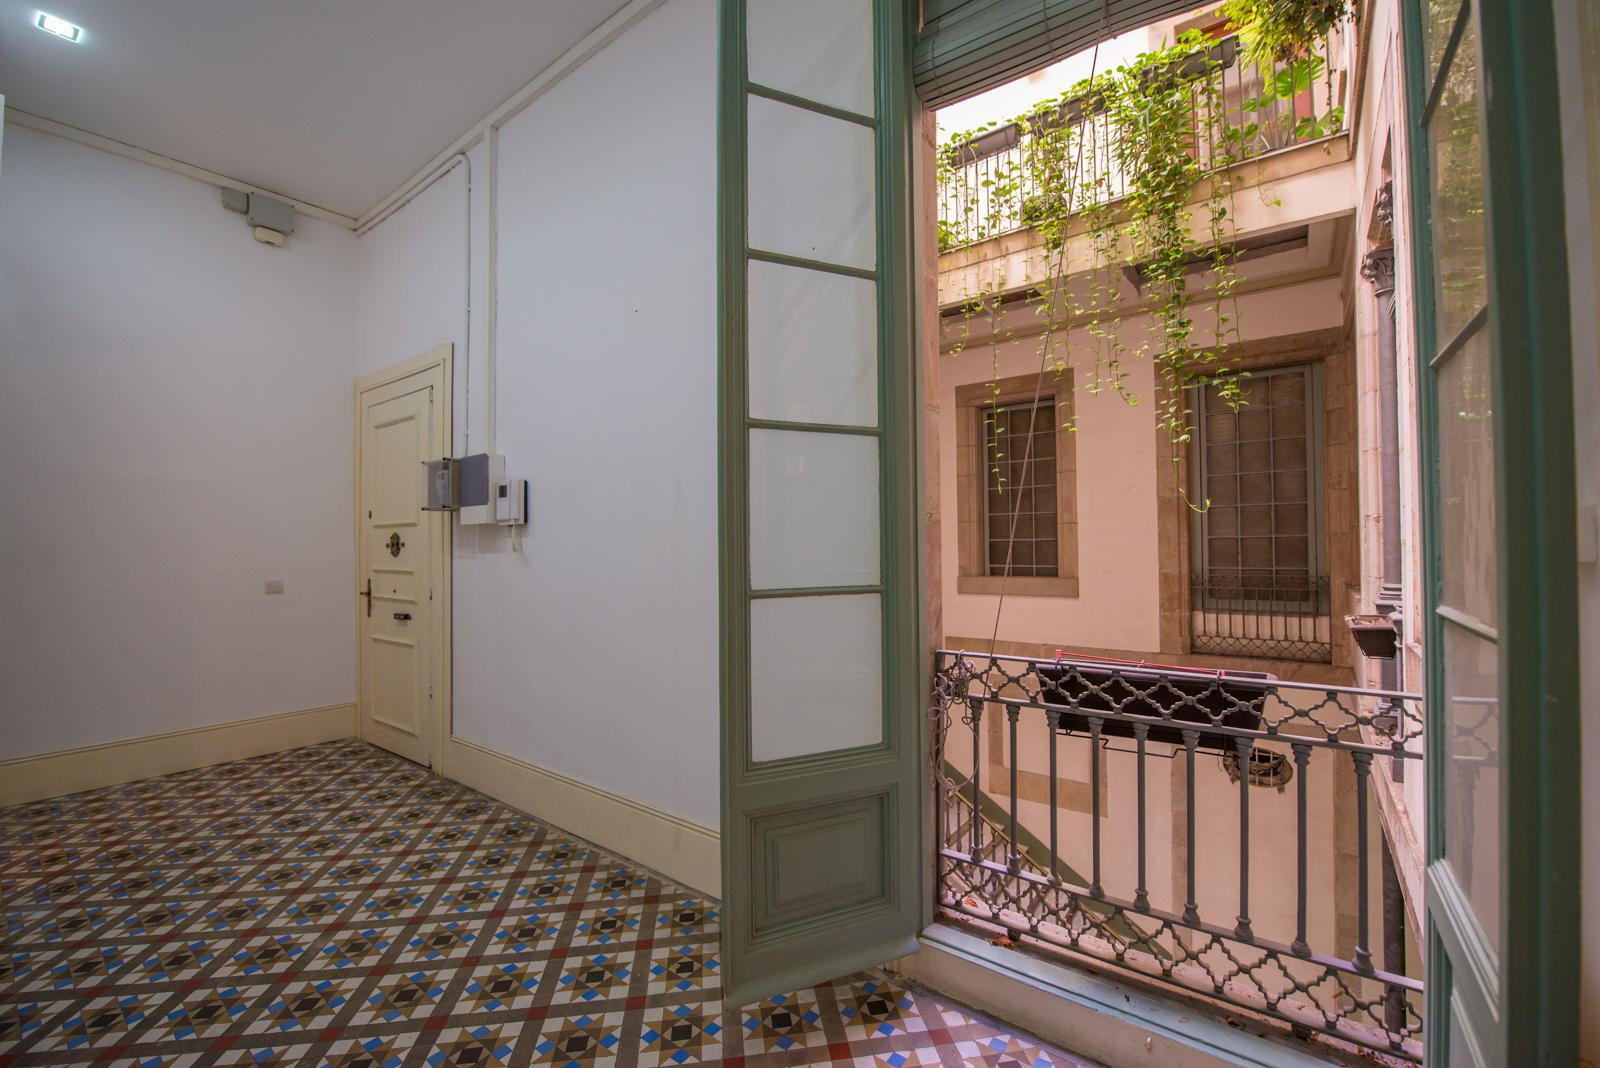 142024 Apartment for sale in Ciutat Vella, Gothic Quarter 20